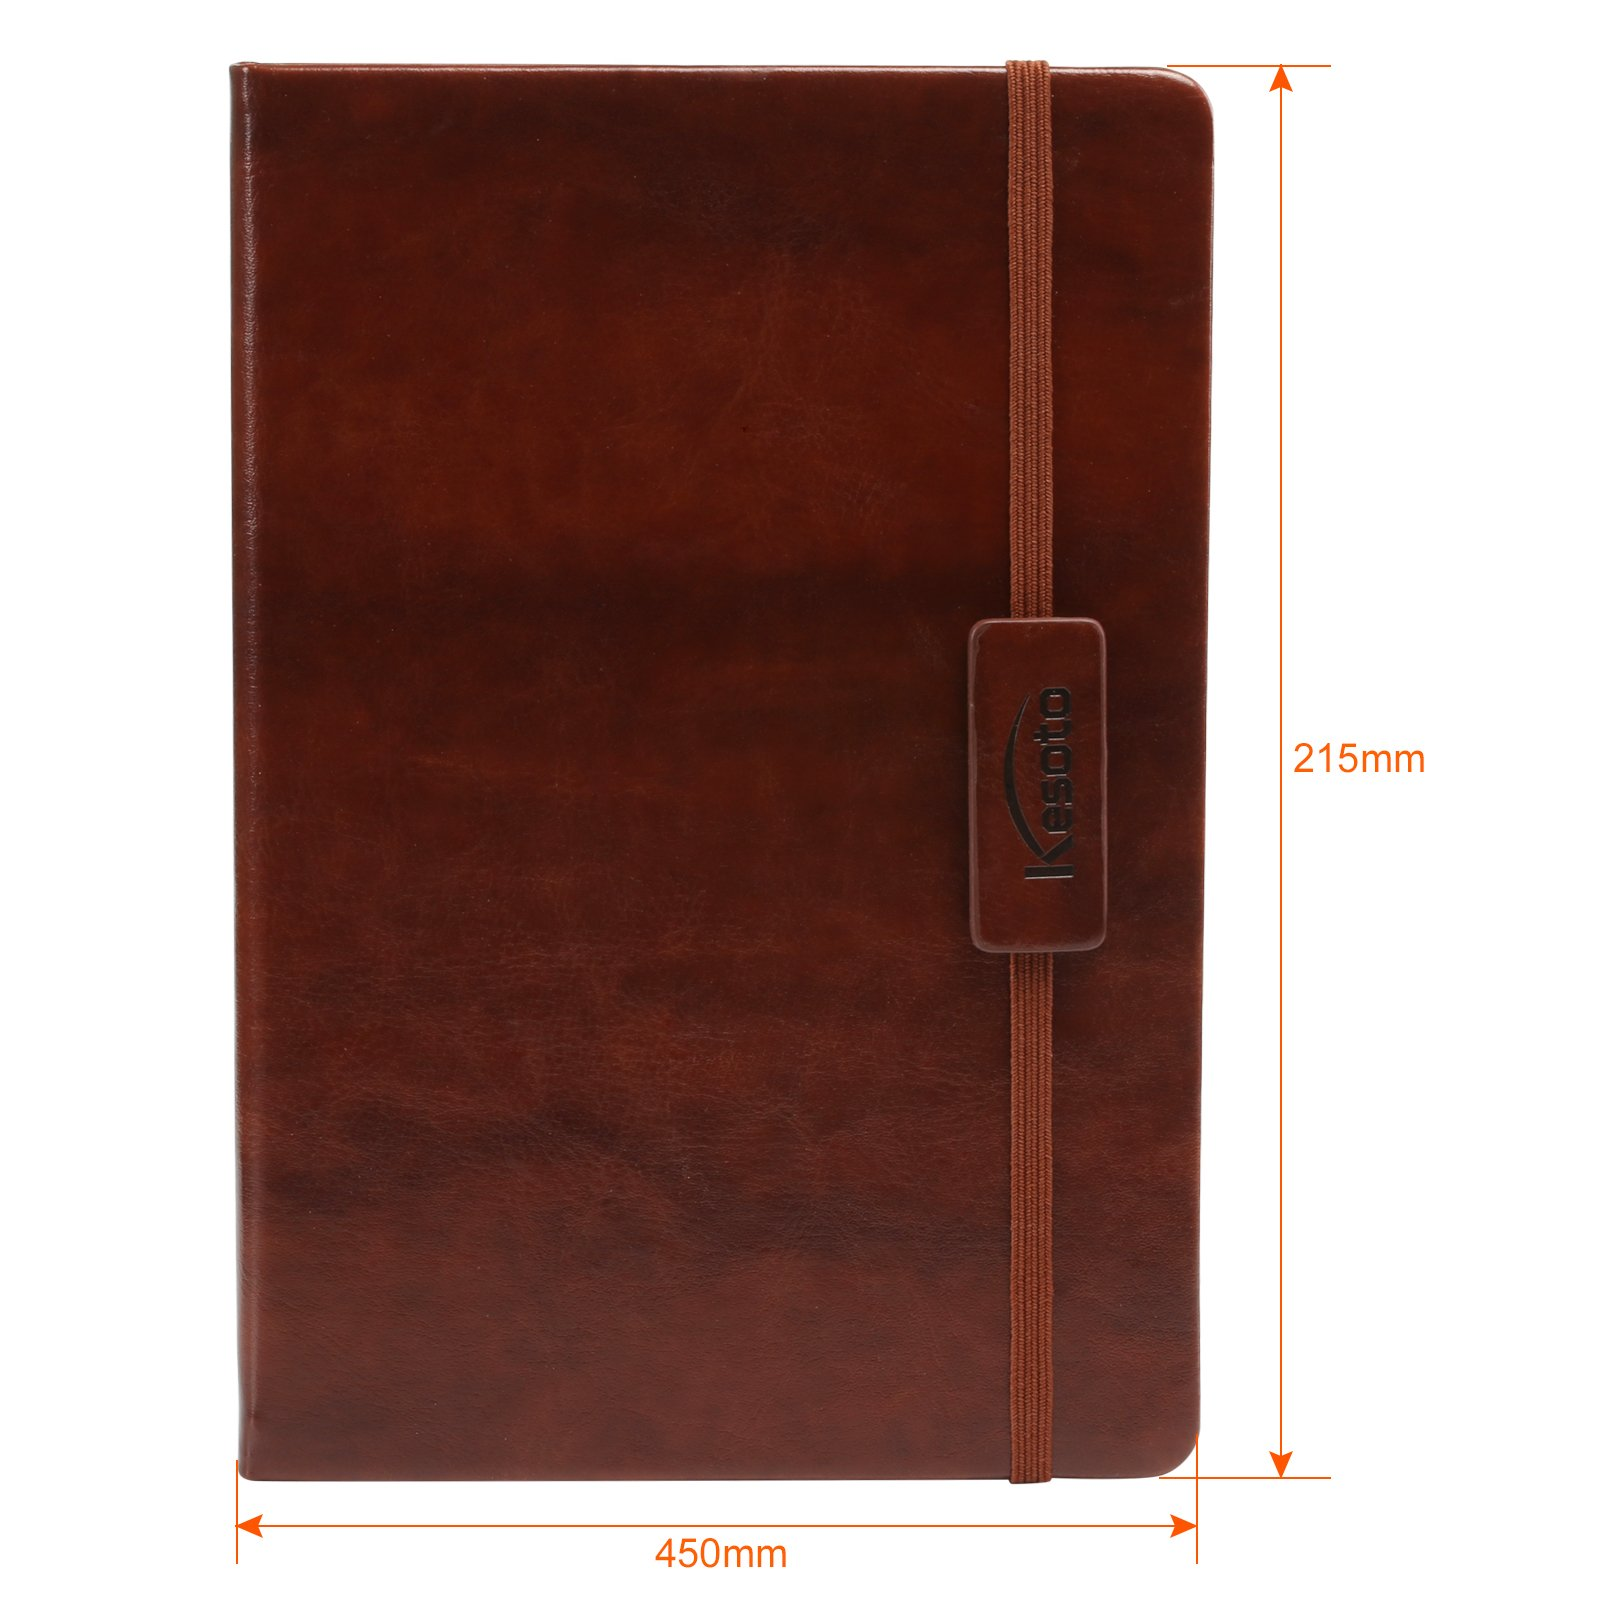 Kesoto A5 Classic Ruled Leather Hardcover Writing Notebook Journal Diary with Elastic Closure and Expandable Paper Pocket (200 Pages) by Kesoto (Image #2)